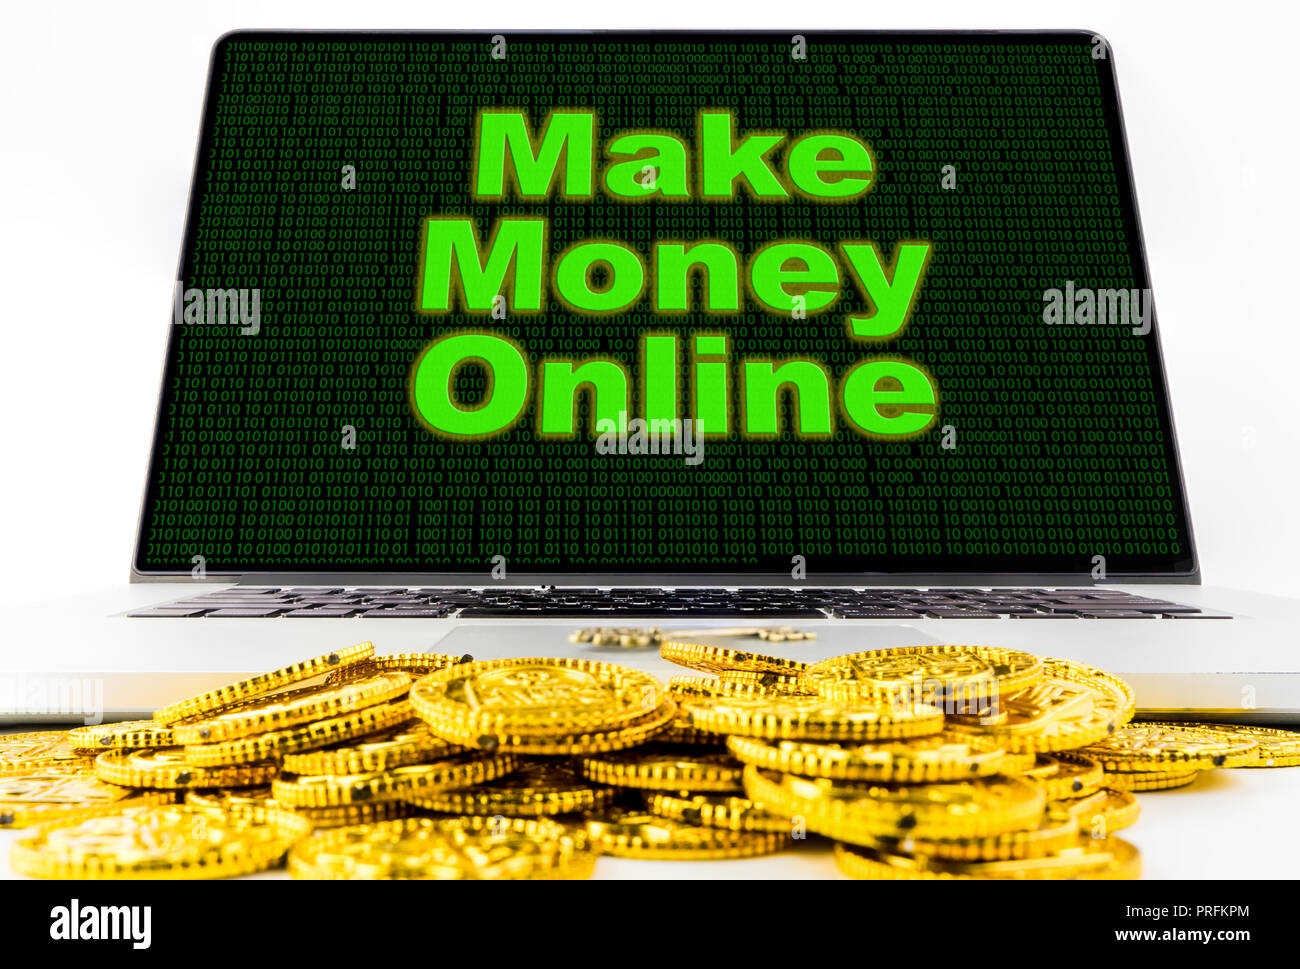 Make money online on computer screen with golden coins Stock Photo